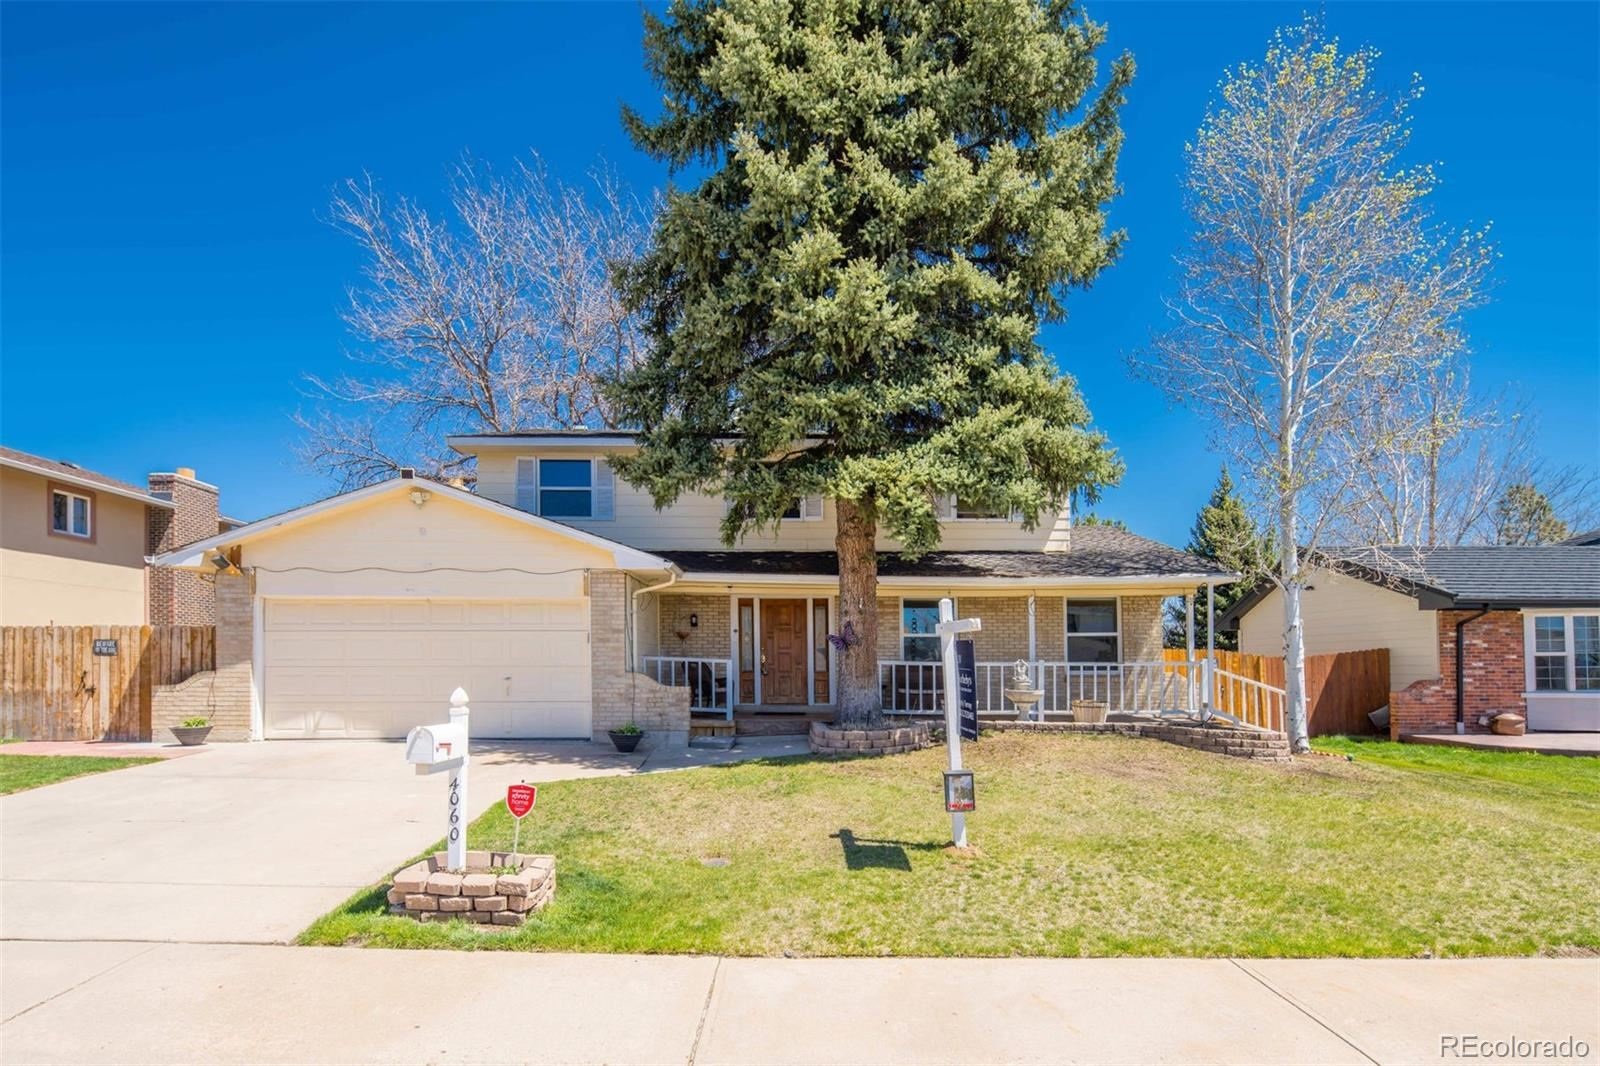 4060 S Willow Way, Denver, CO 80237 - #: 5577132